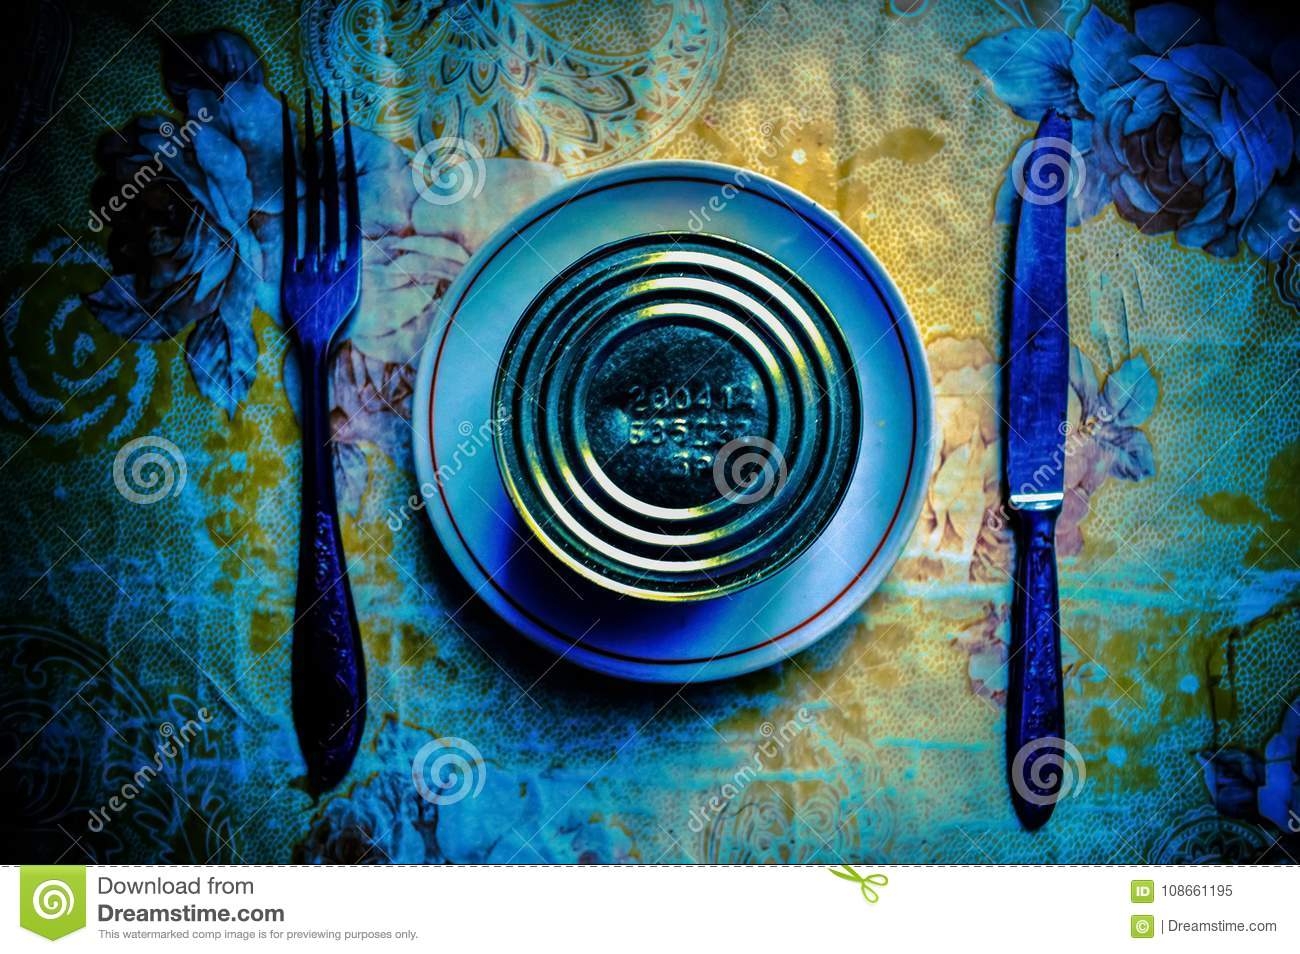 Conceptual serving of breakfast from canned food, knife and forks.